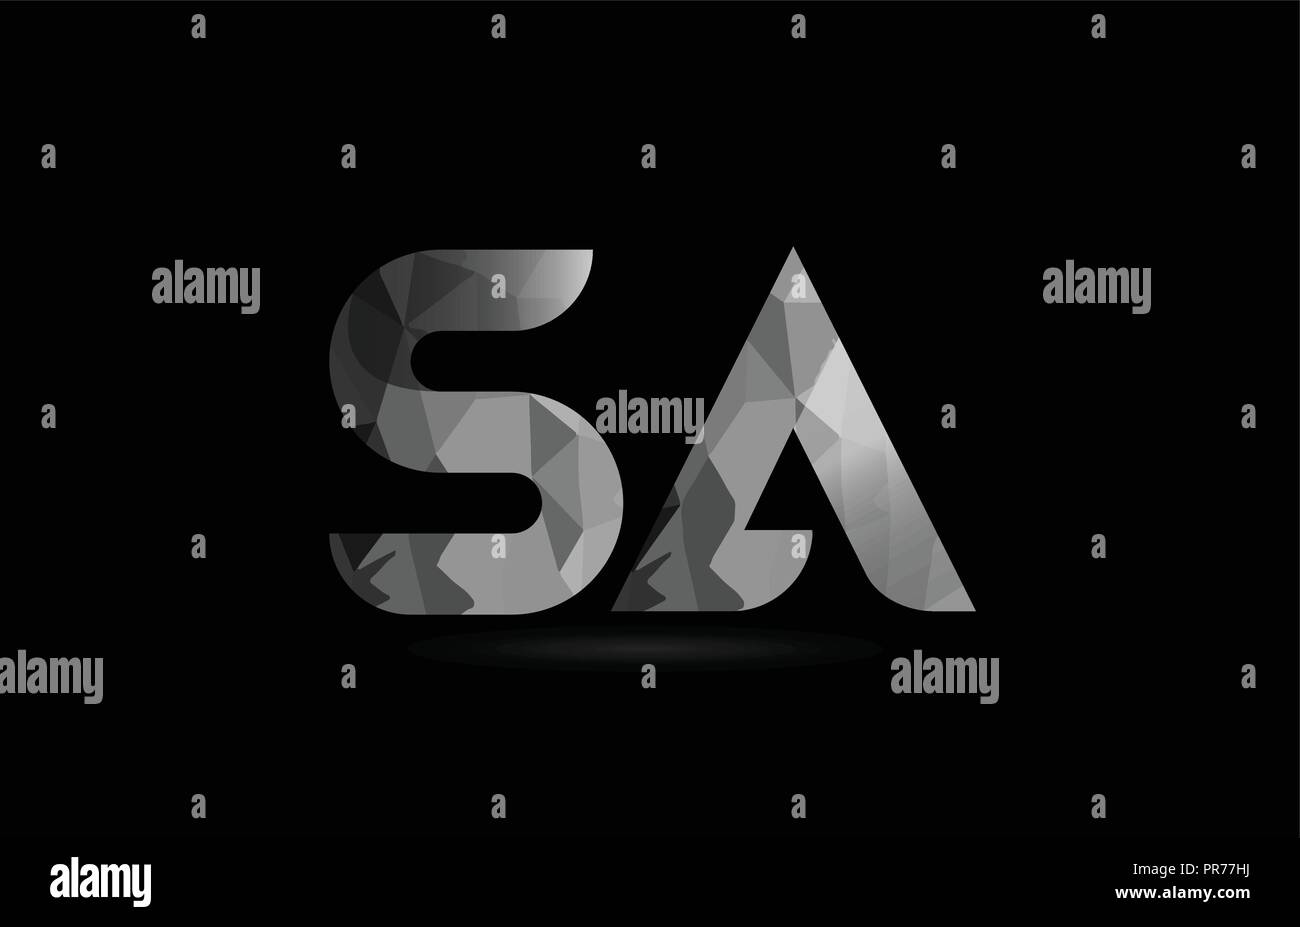 black and white alphabet letter sa s a logo combination design suitable for a company or business Stock Vector